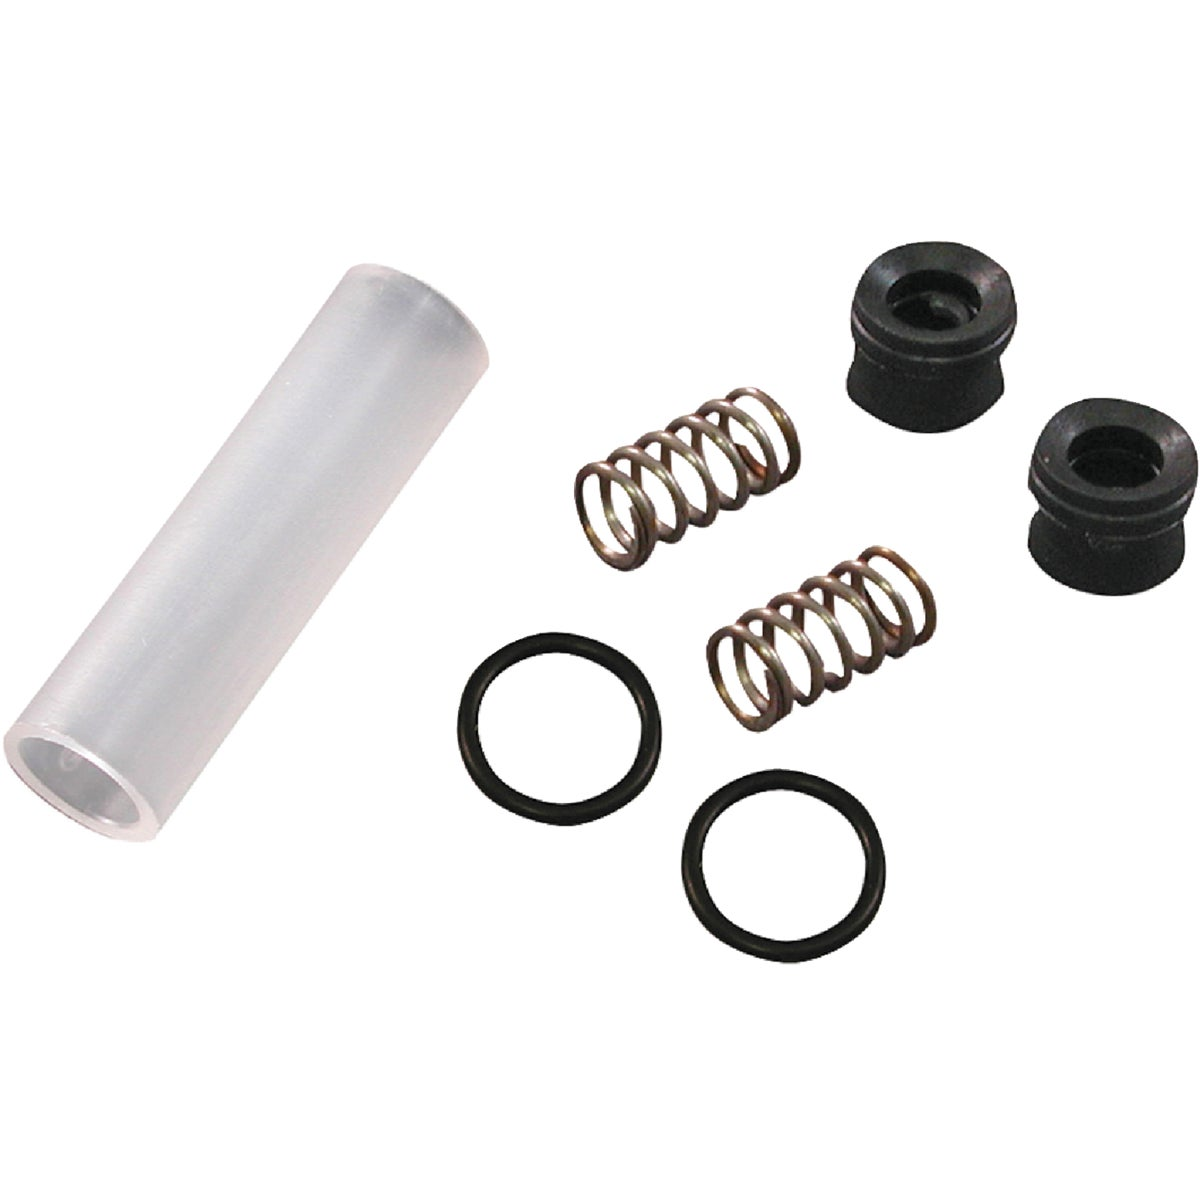 STERLING SEAL KIT - 80941 by Danco Perfect Match